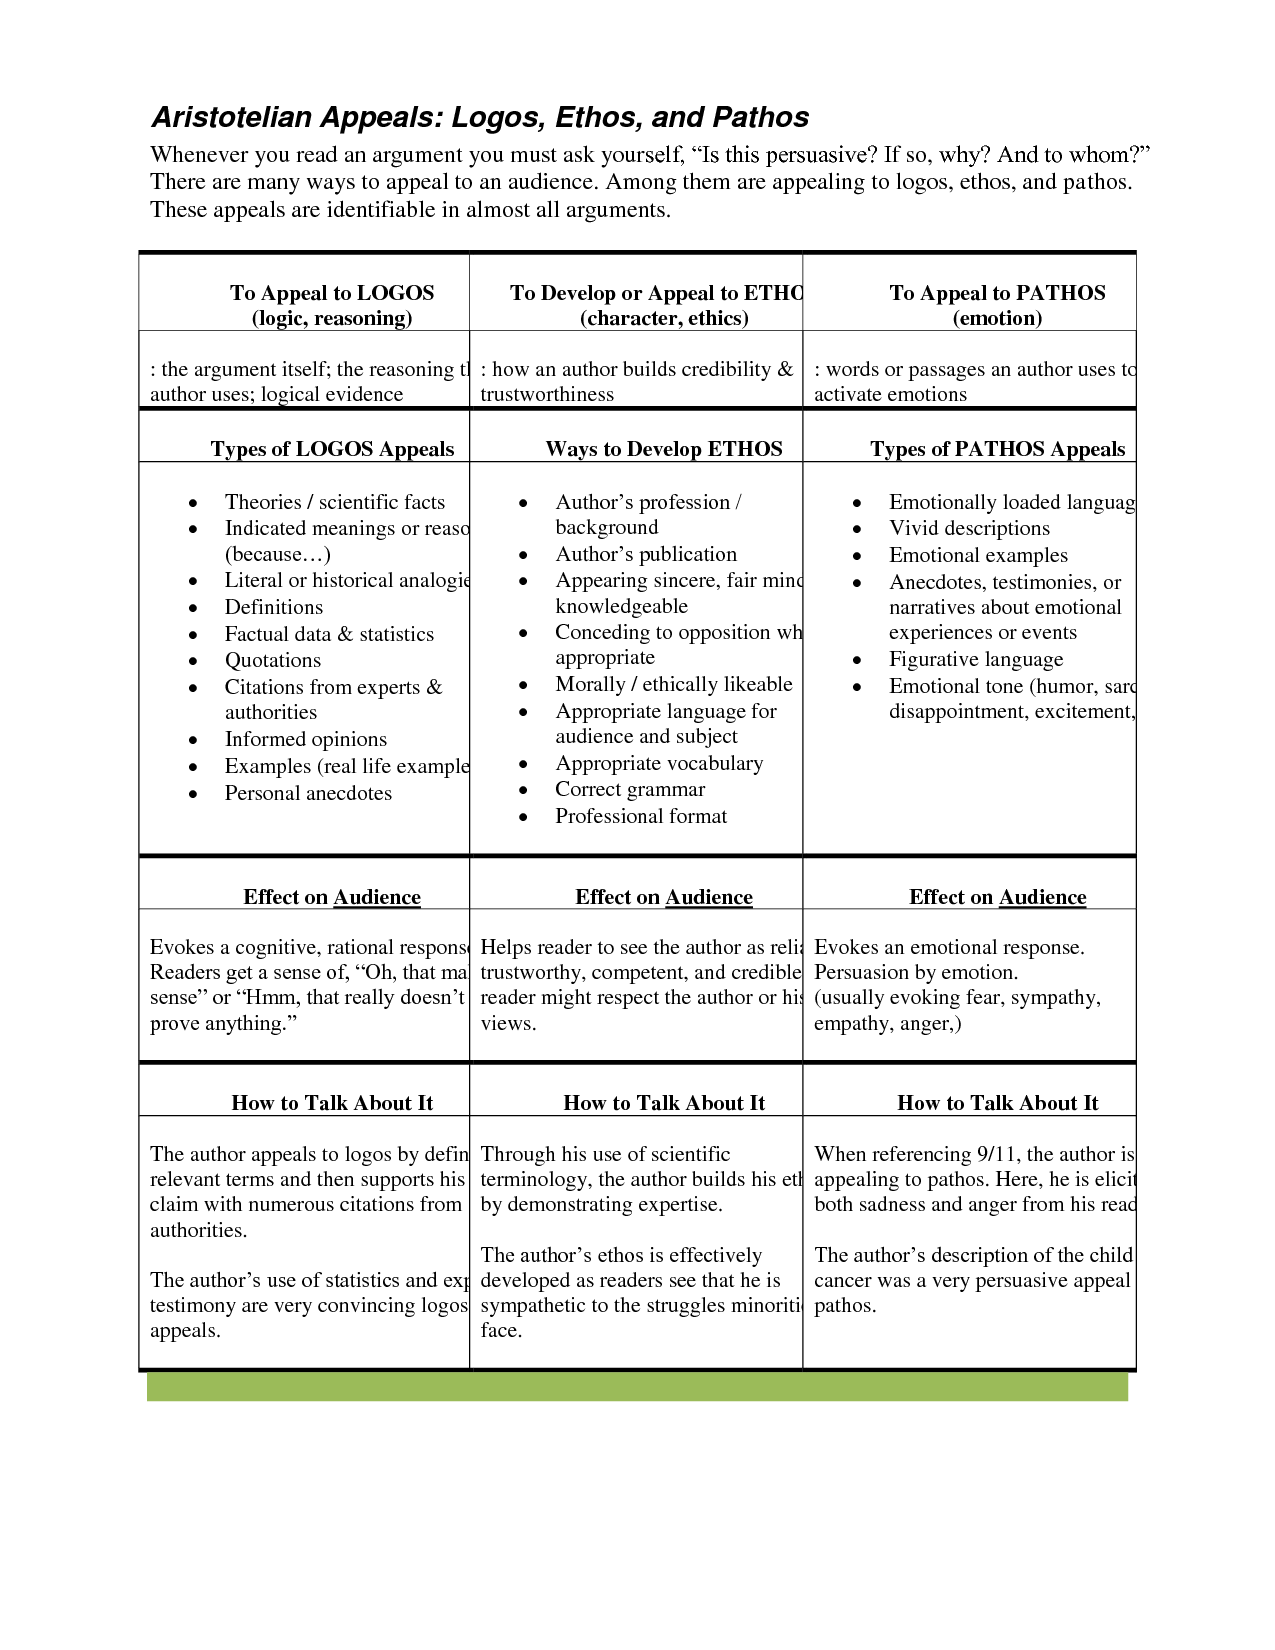 004 Essay Example Letter From Birmingham Jail Ethos Pathos Logos Persuasive Using And Best Images About Change Management Prof Top Full